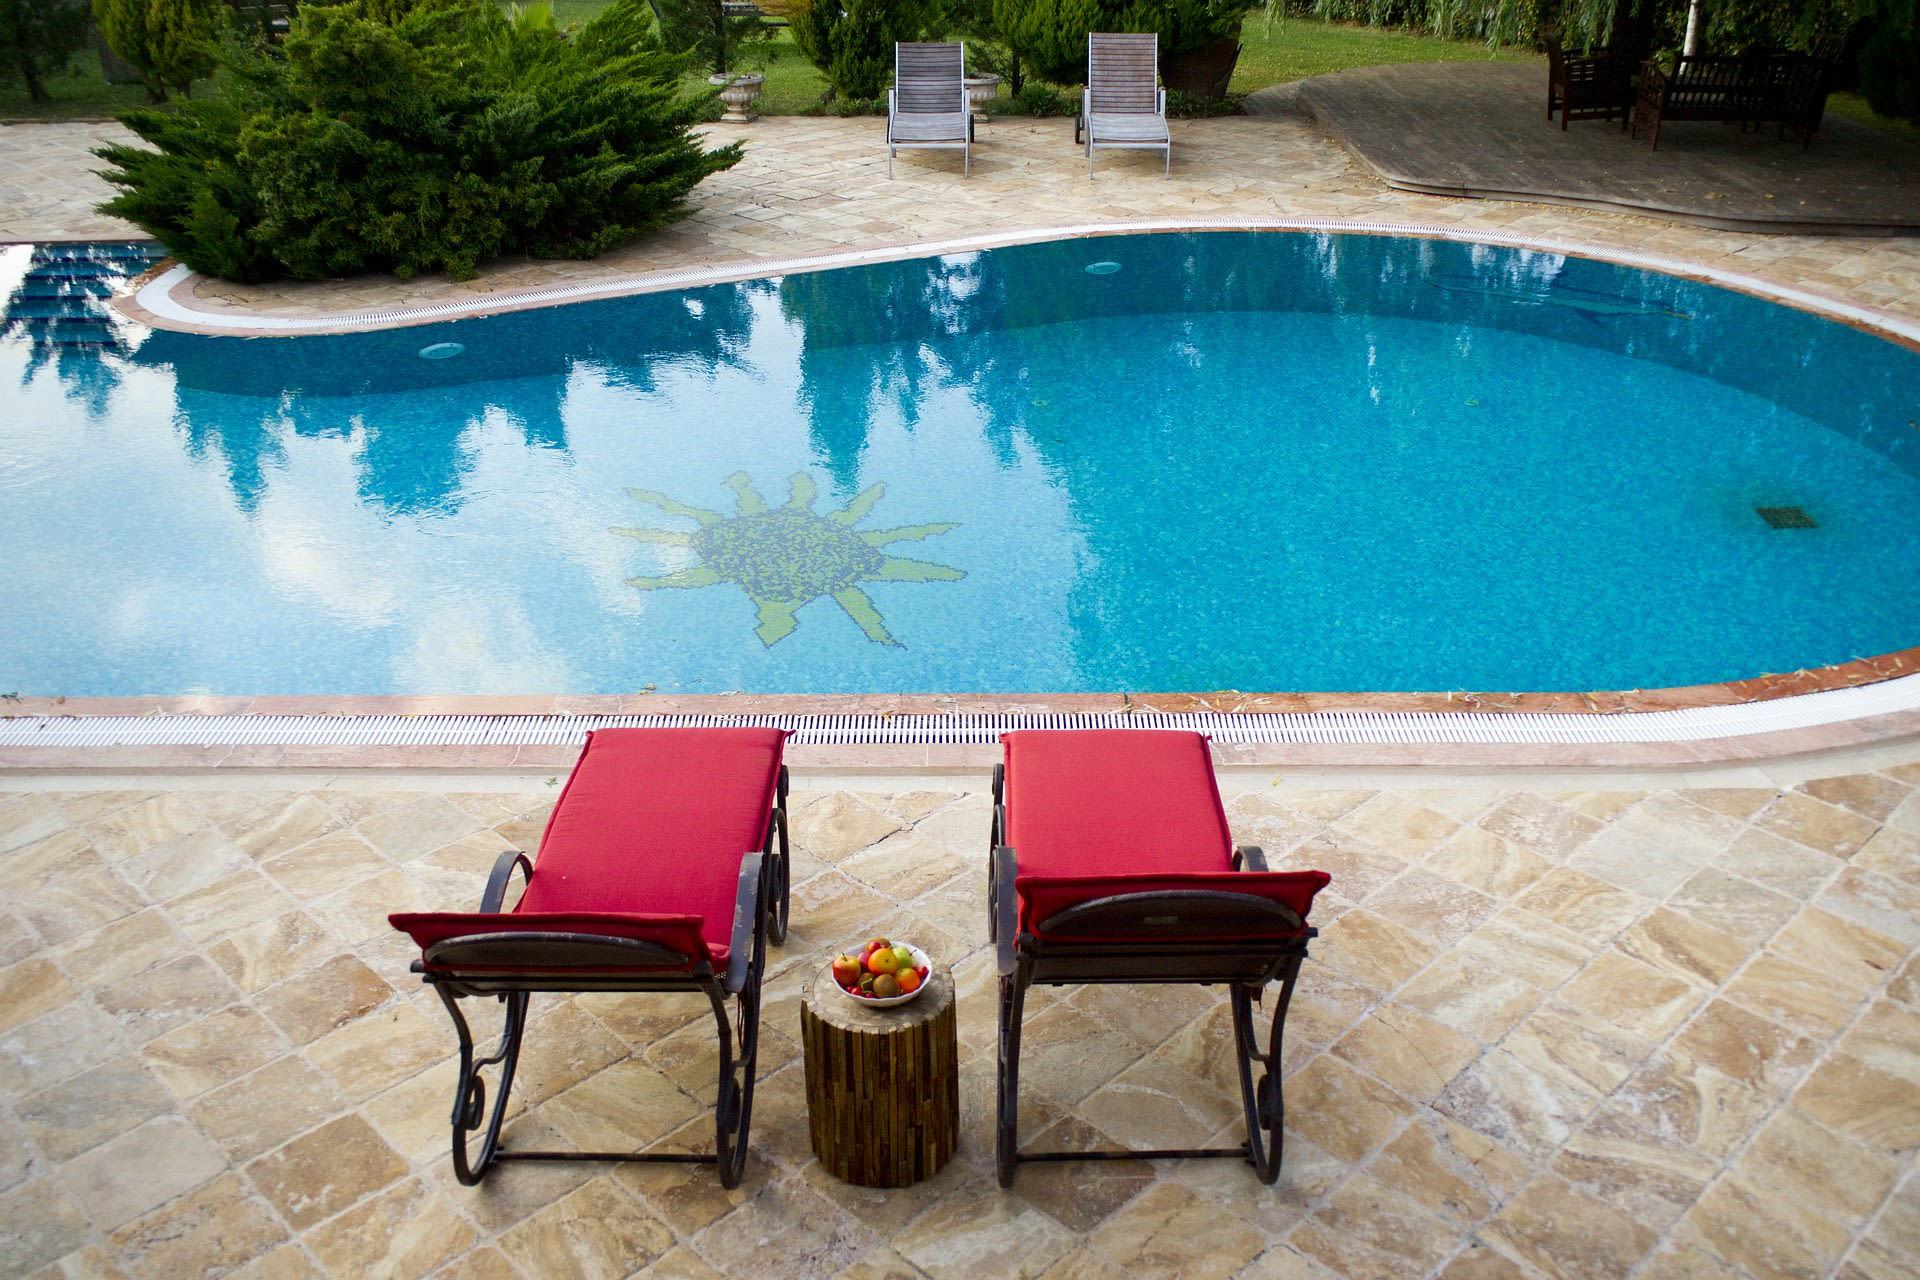 A Swimming Pool: An Obstacle or Home-selling Feature